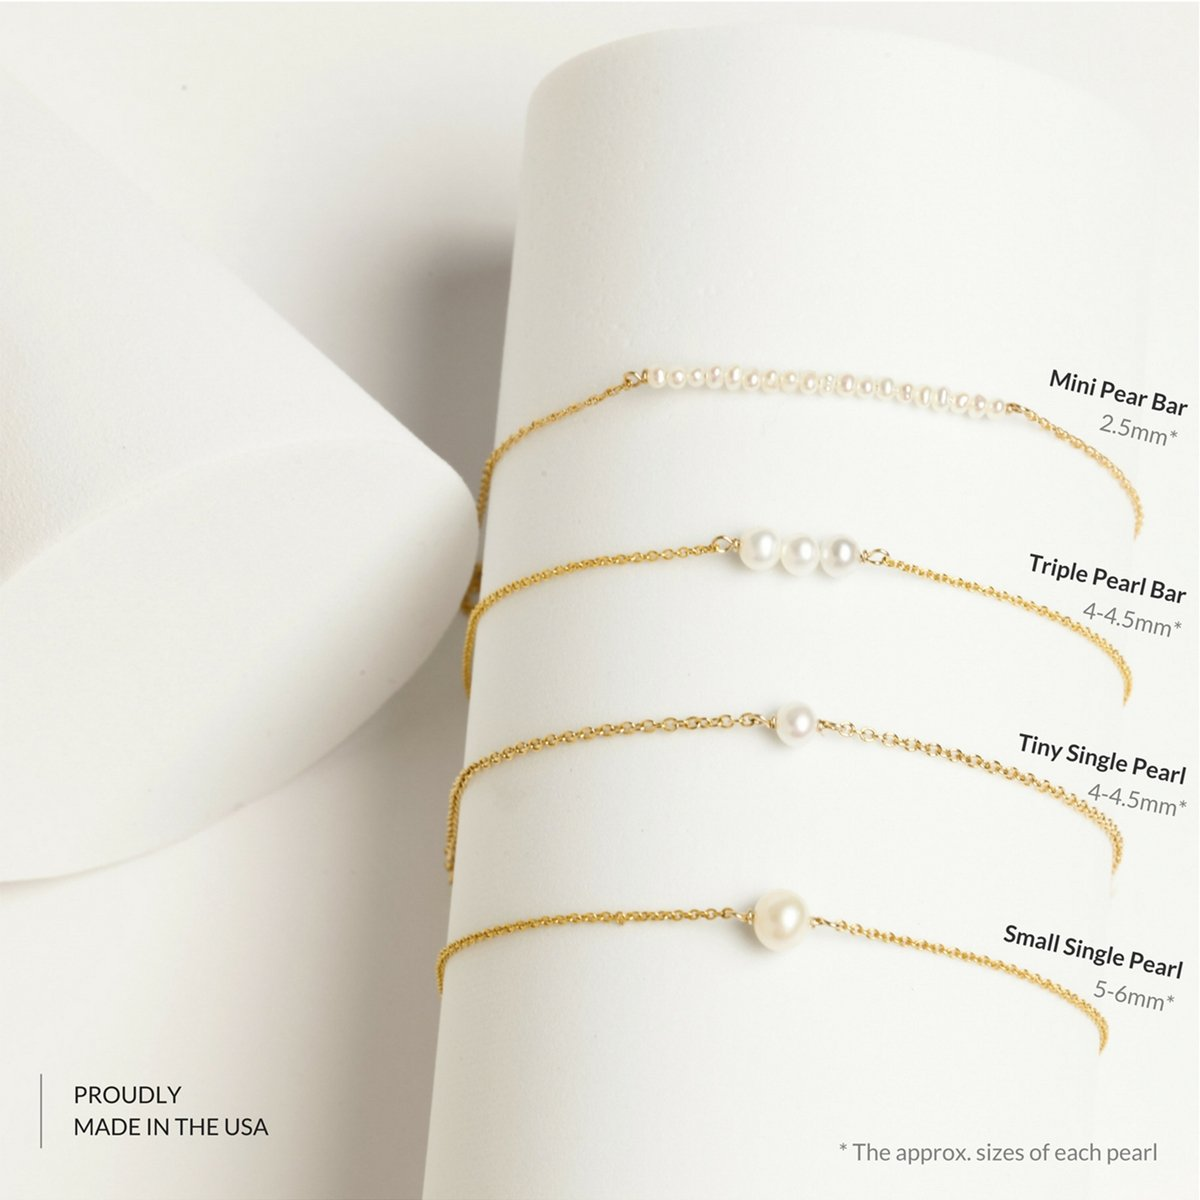 BENIQUE Dainty Necklace Choker for Women - Freshwater Cultured Pearl, Fine Chain for Layering, AAA Cubic Zirconia Drop, 14K Gold Filled, Made in USA, 13''+3'' Adjustable Ext. (Mini Pearl Bar) by BENIQUE (Image #4)